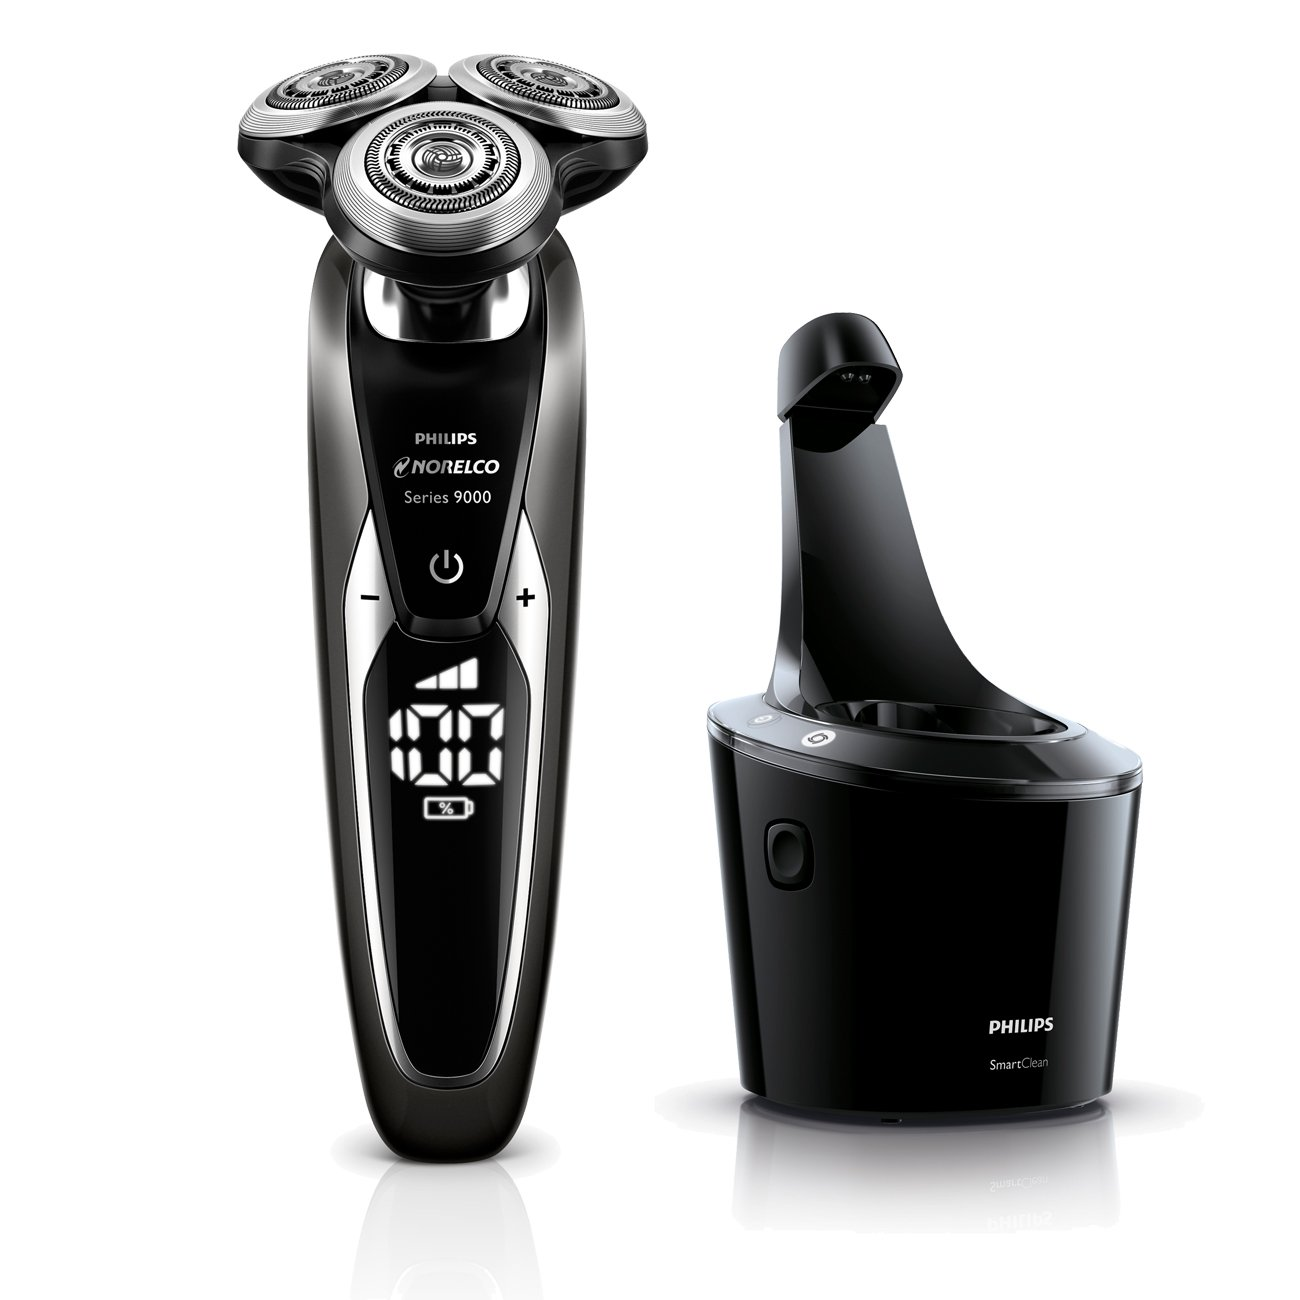 Philips Norelco Electric Shaver 9700, Cleansing Brush by Philips Norelco (Image #13)